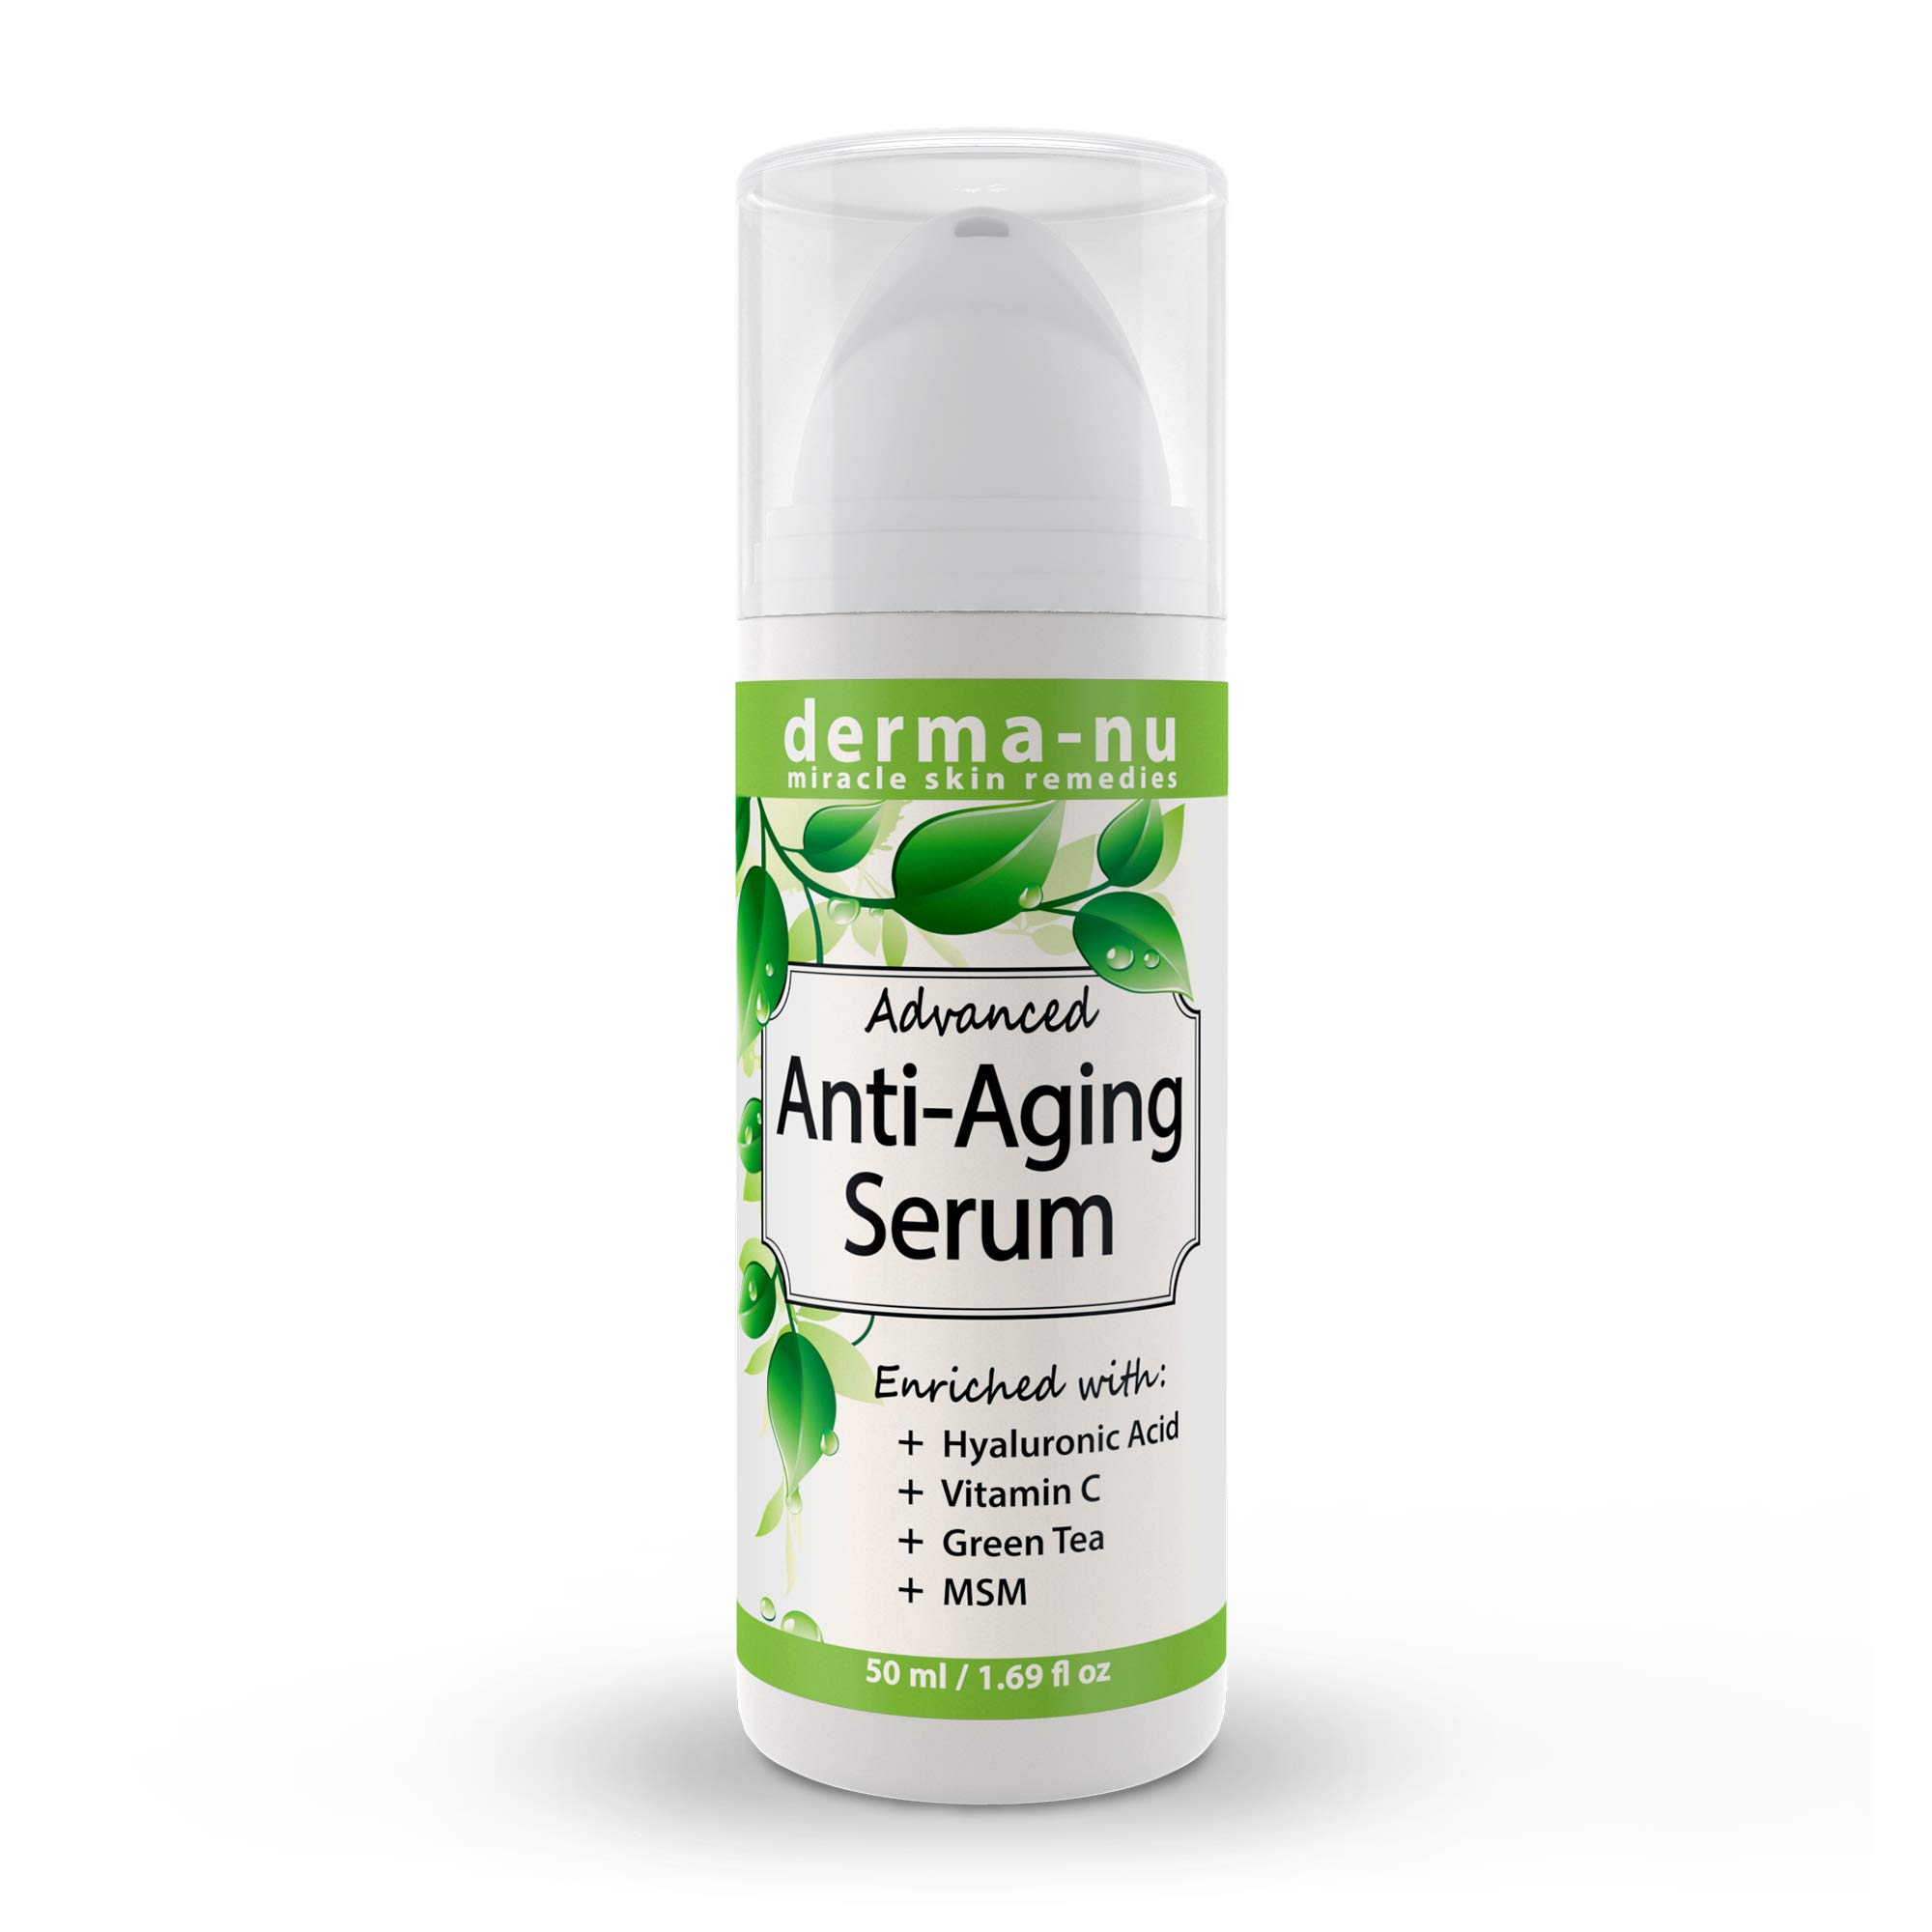 Advanced Anti-Aging Serum with Hyaluronic Acid - Natural Anti Wrinkle Vitamin C Serum for Face - Advanced Deep Tightening Facial Treatment to Reduce Fine Lines - Plumping and Firming